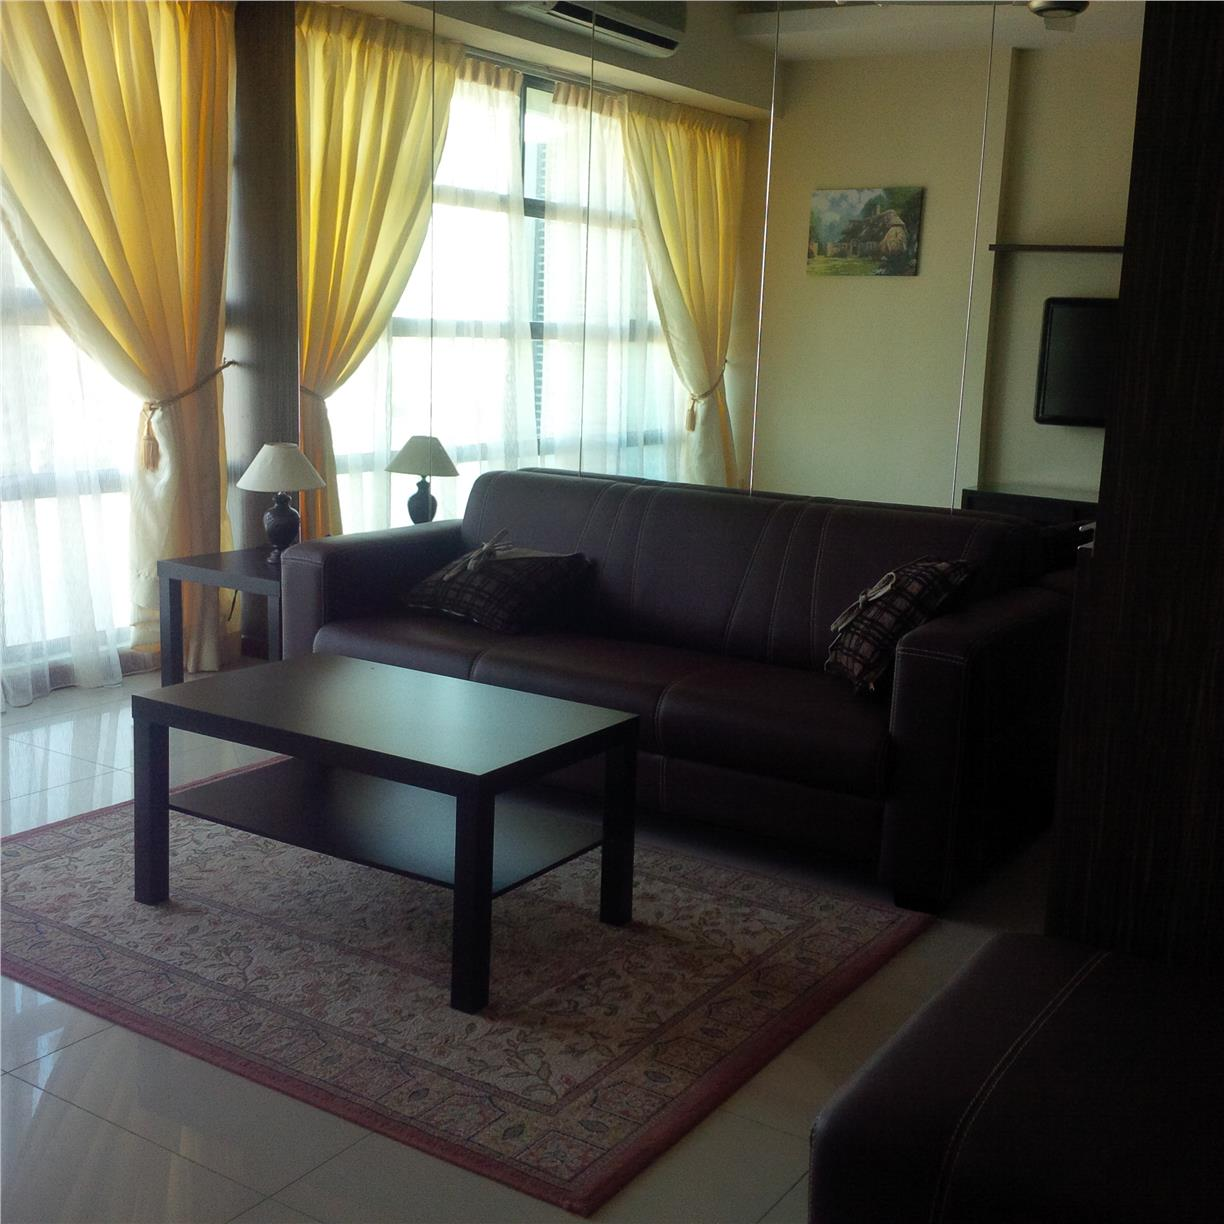 Saujana Residency Condo for rent, SS 16, Subang Jaya, Near Empire, F/F